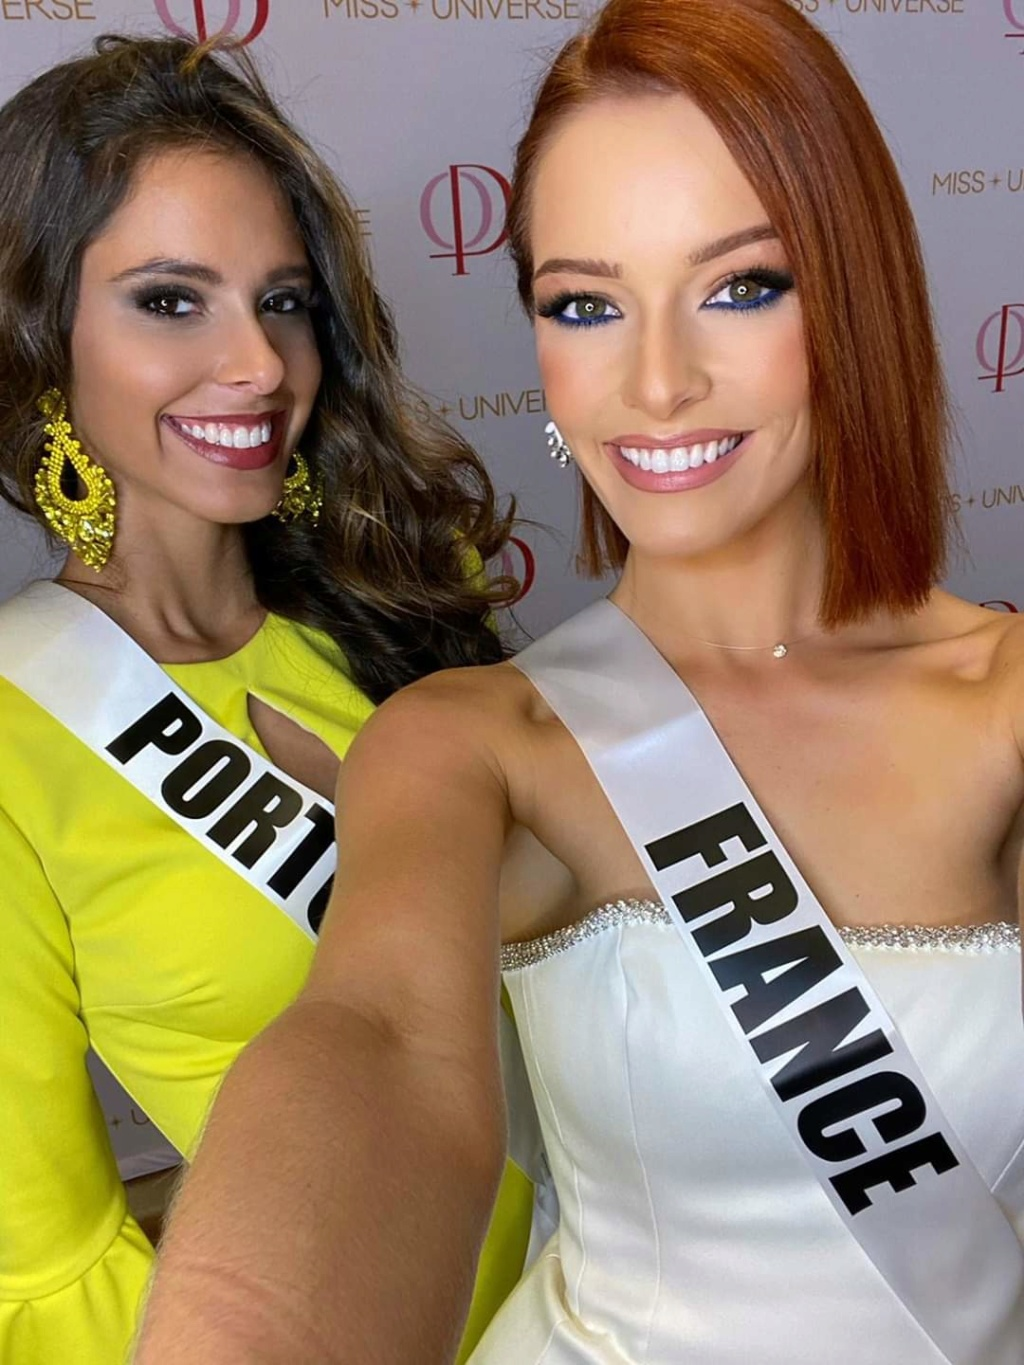 MISS UNIVERSE 2019 - OFFICIAL COVERAGE  - Page 9 Fb_13857